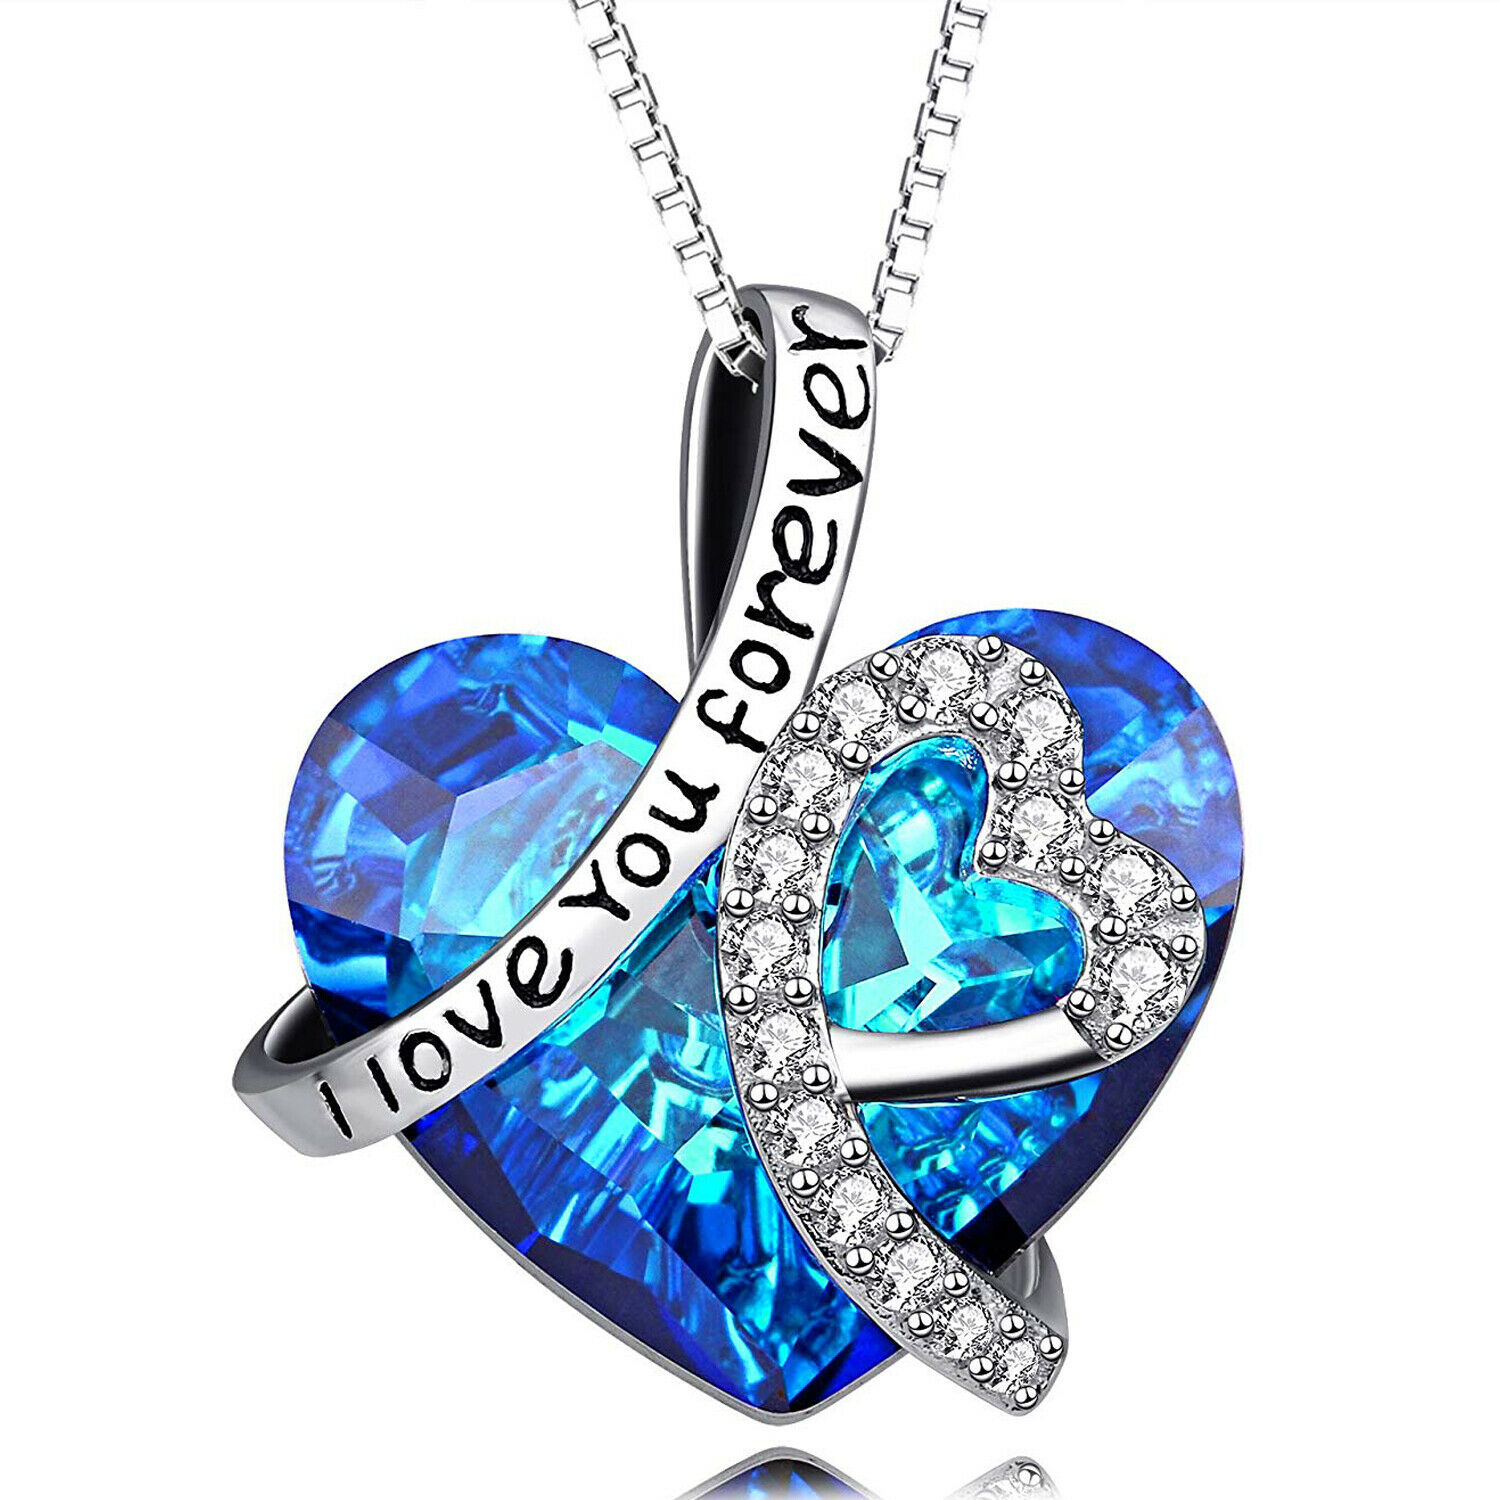 INFINITY LOVE HEART NECKLACE - BIRTHDAY GIFTS FOR WIFE GIRLF